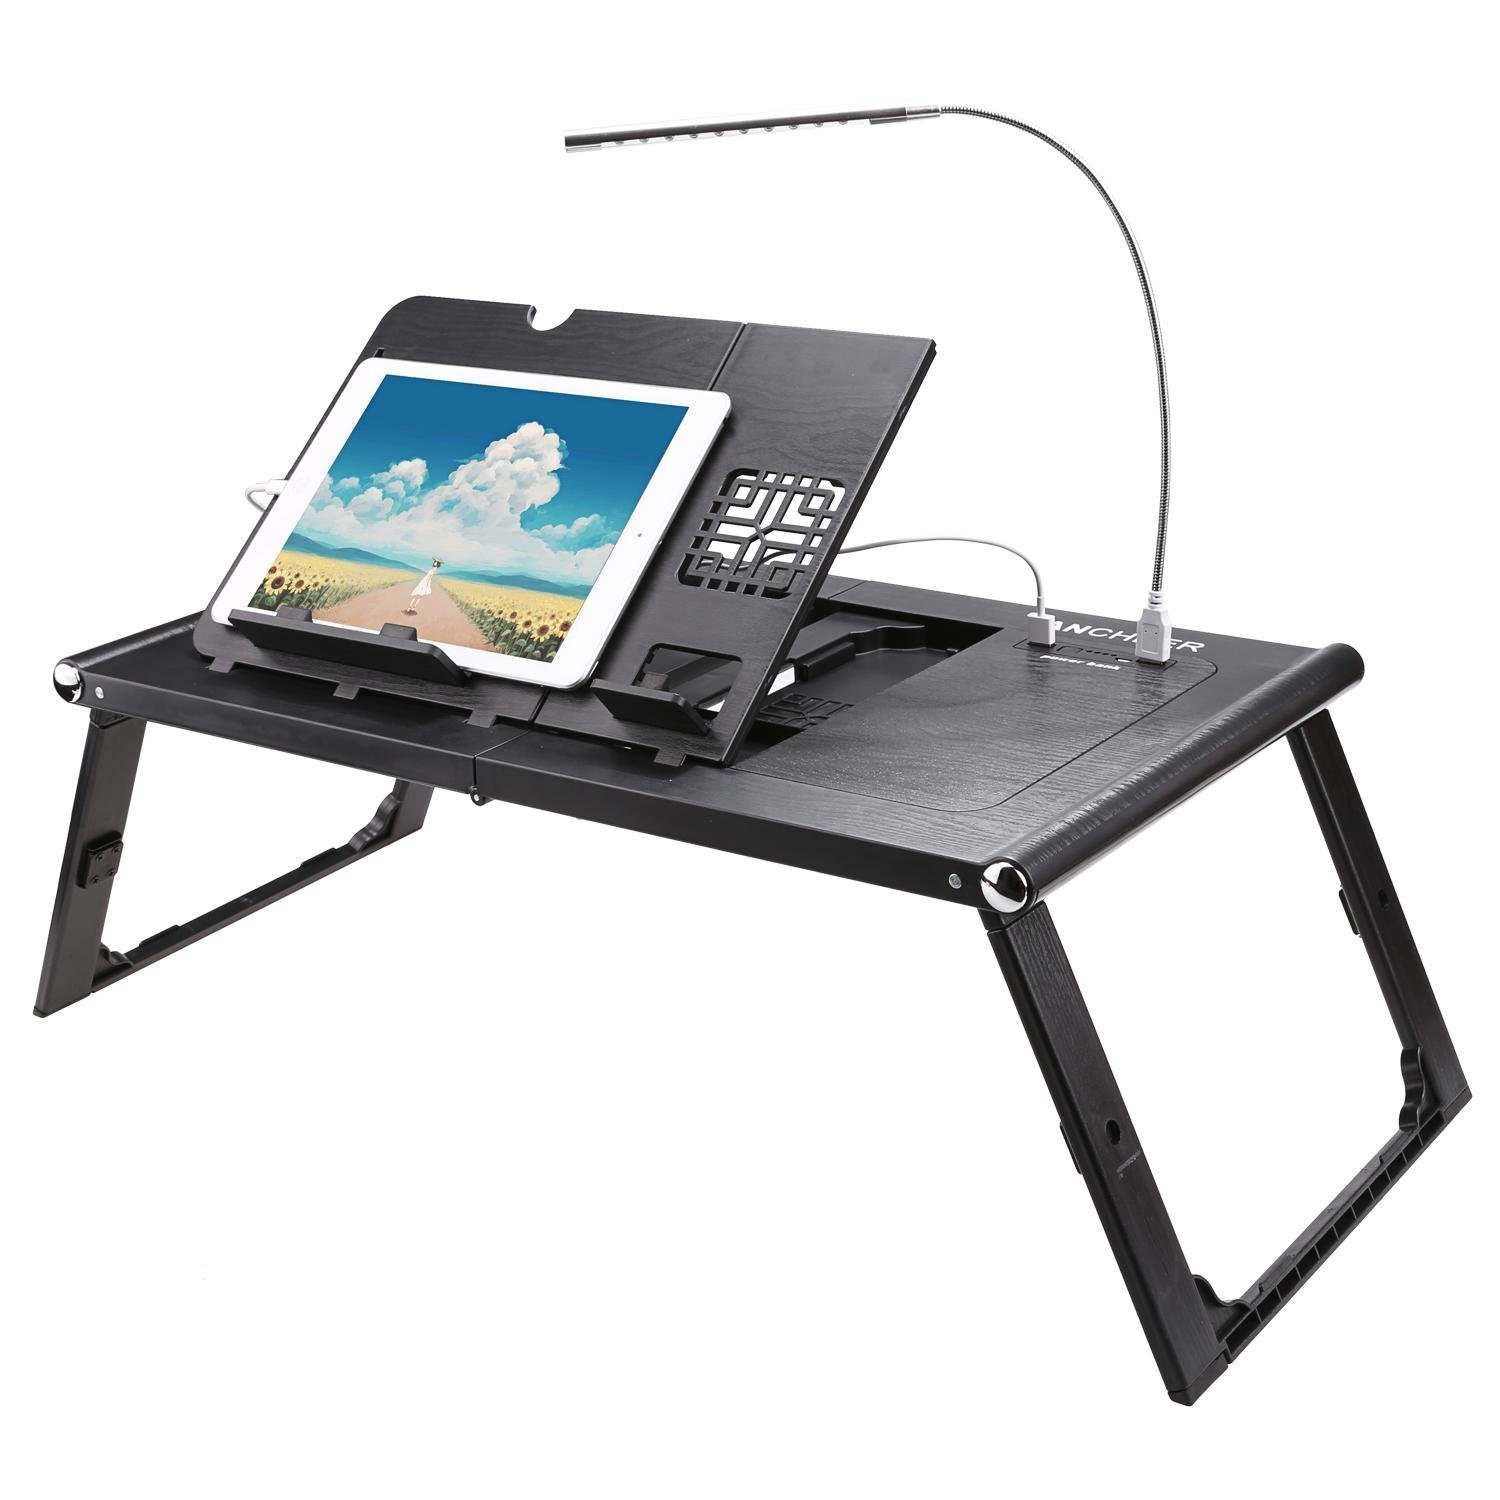 Etable Folding Adjustable Lap Desk With Built In 10000mAh Powerbank To  Recharge Tablet/Phones